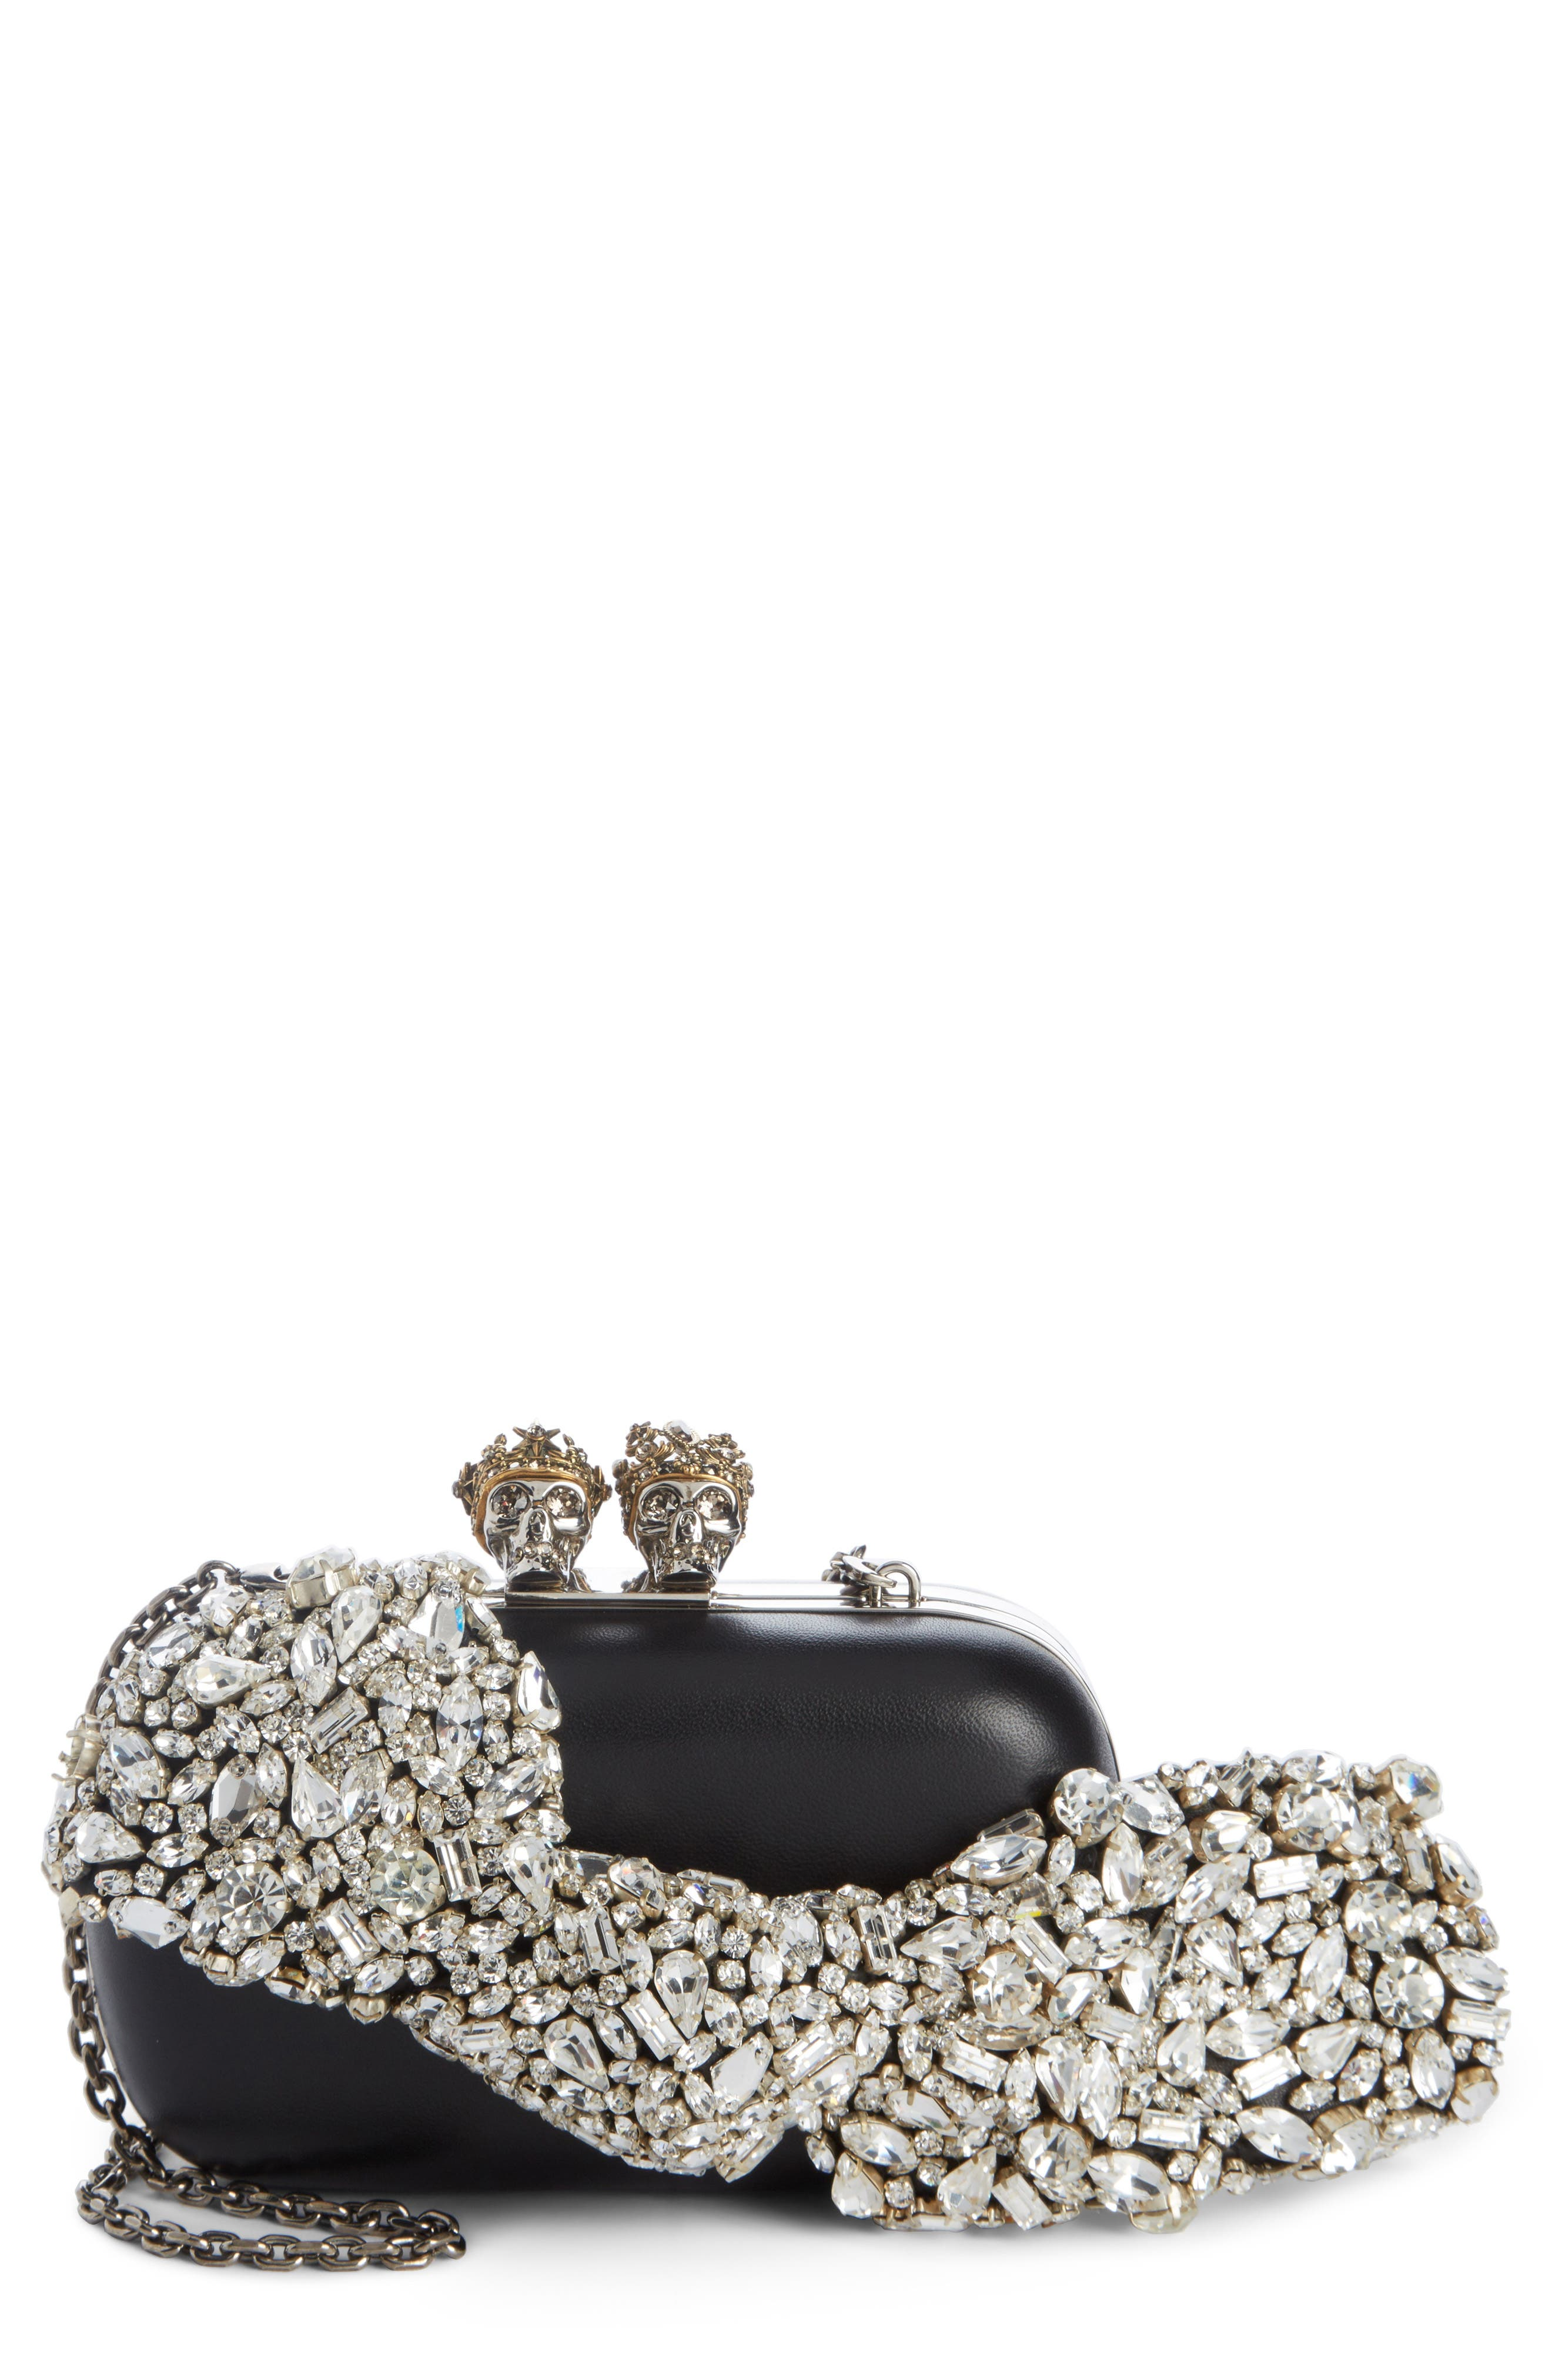 Queen & King Crystal Bow Clutch,                         Main,                         color, Black